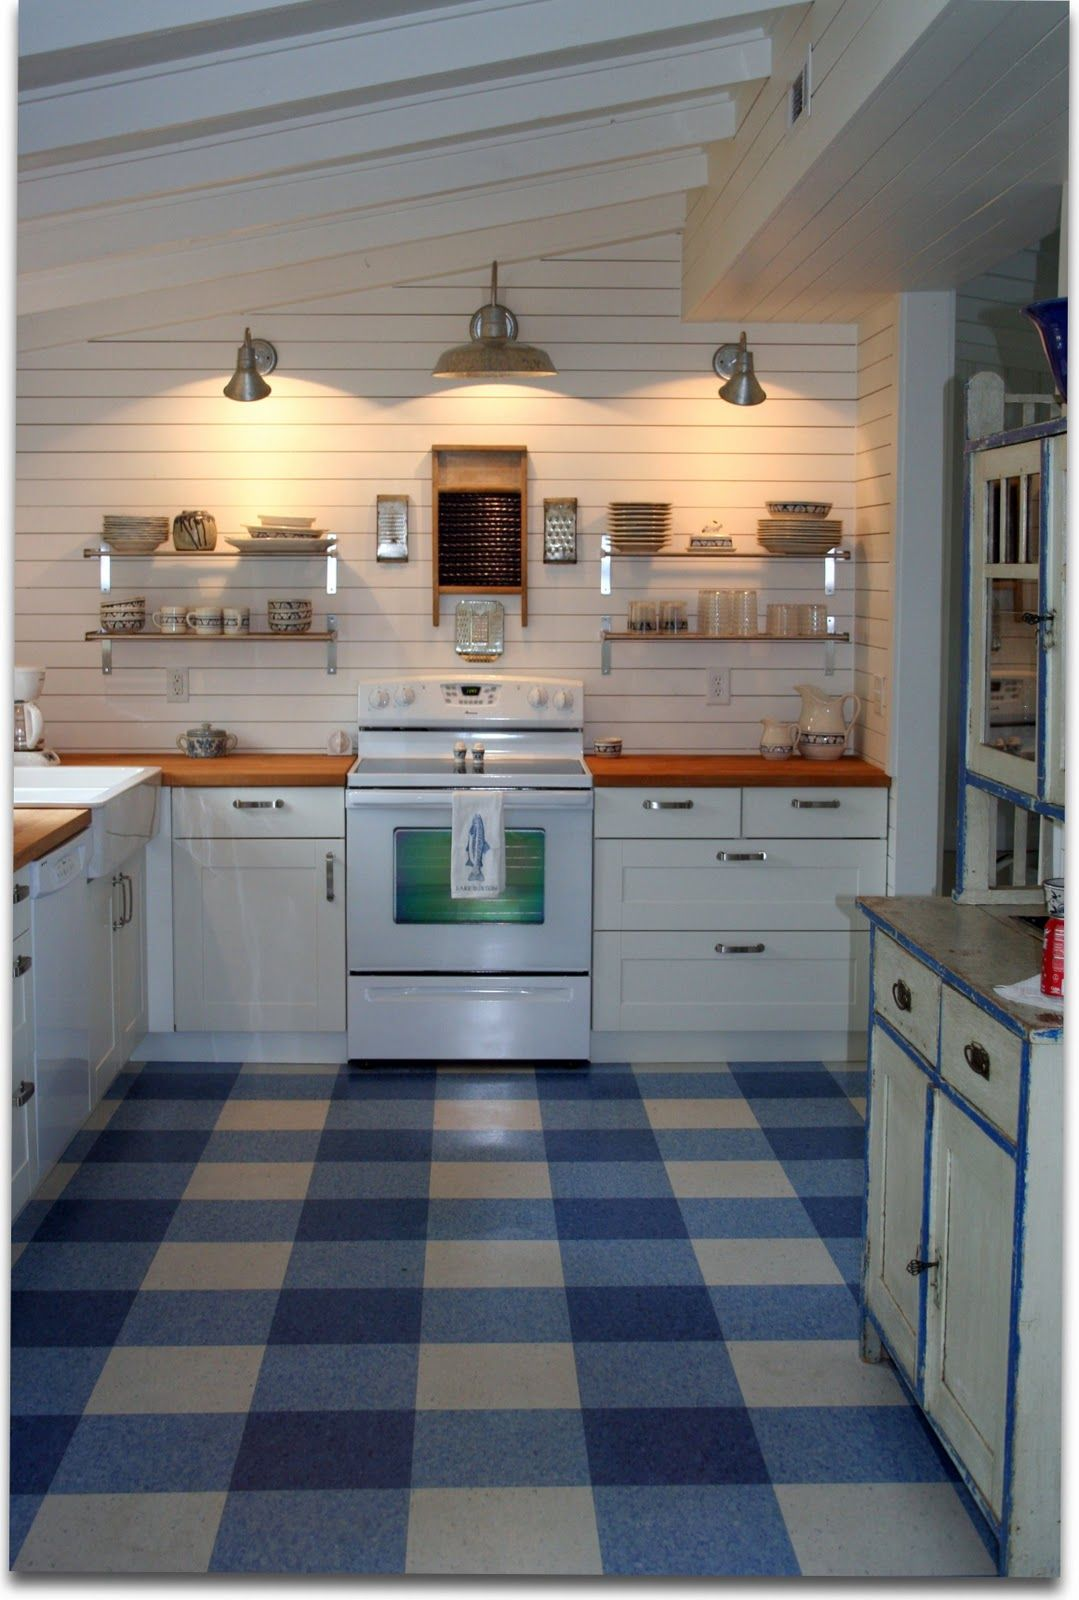 lake burton cottage i did using ikea cabinets, vinyl tiles and